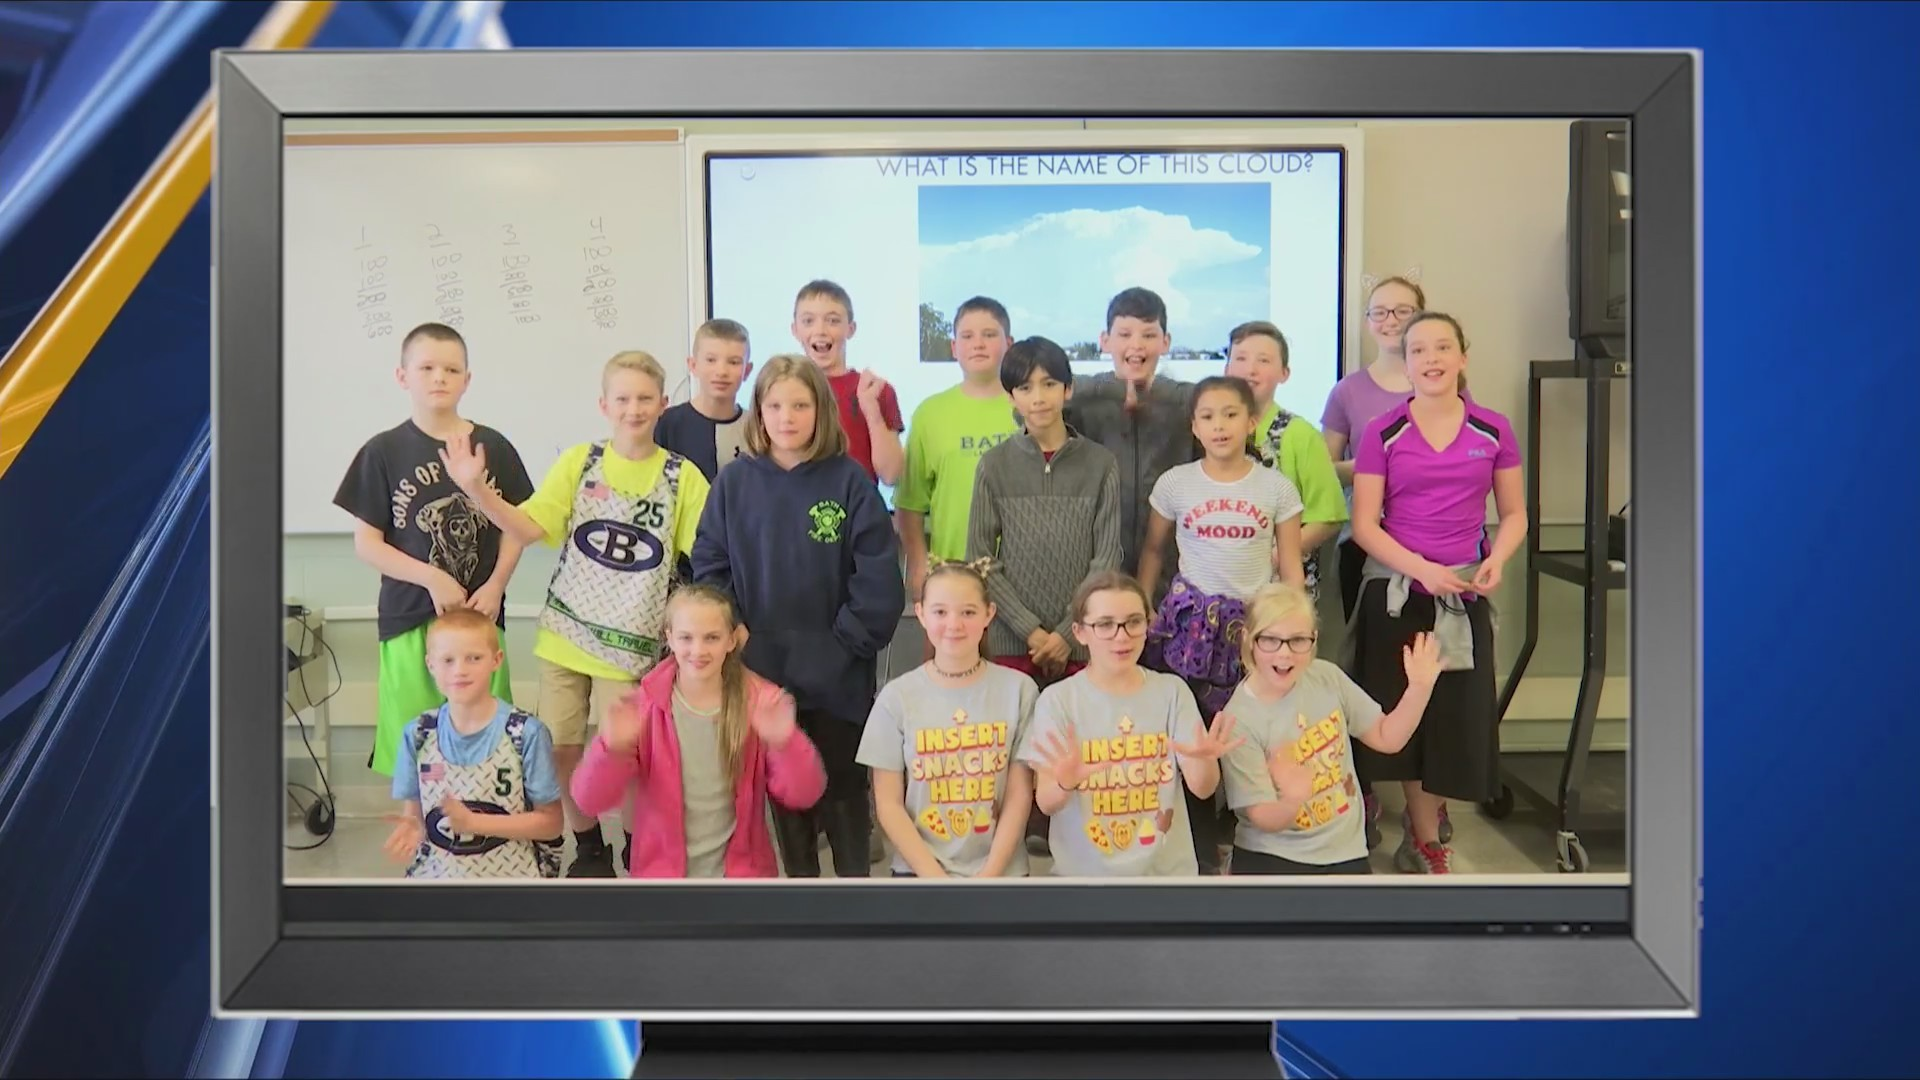 Weather Wisdom: Group 3 from Dana L Lyon Middle School